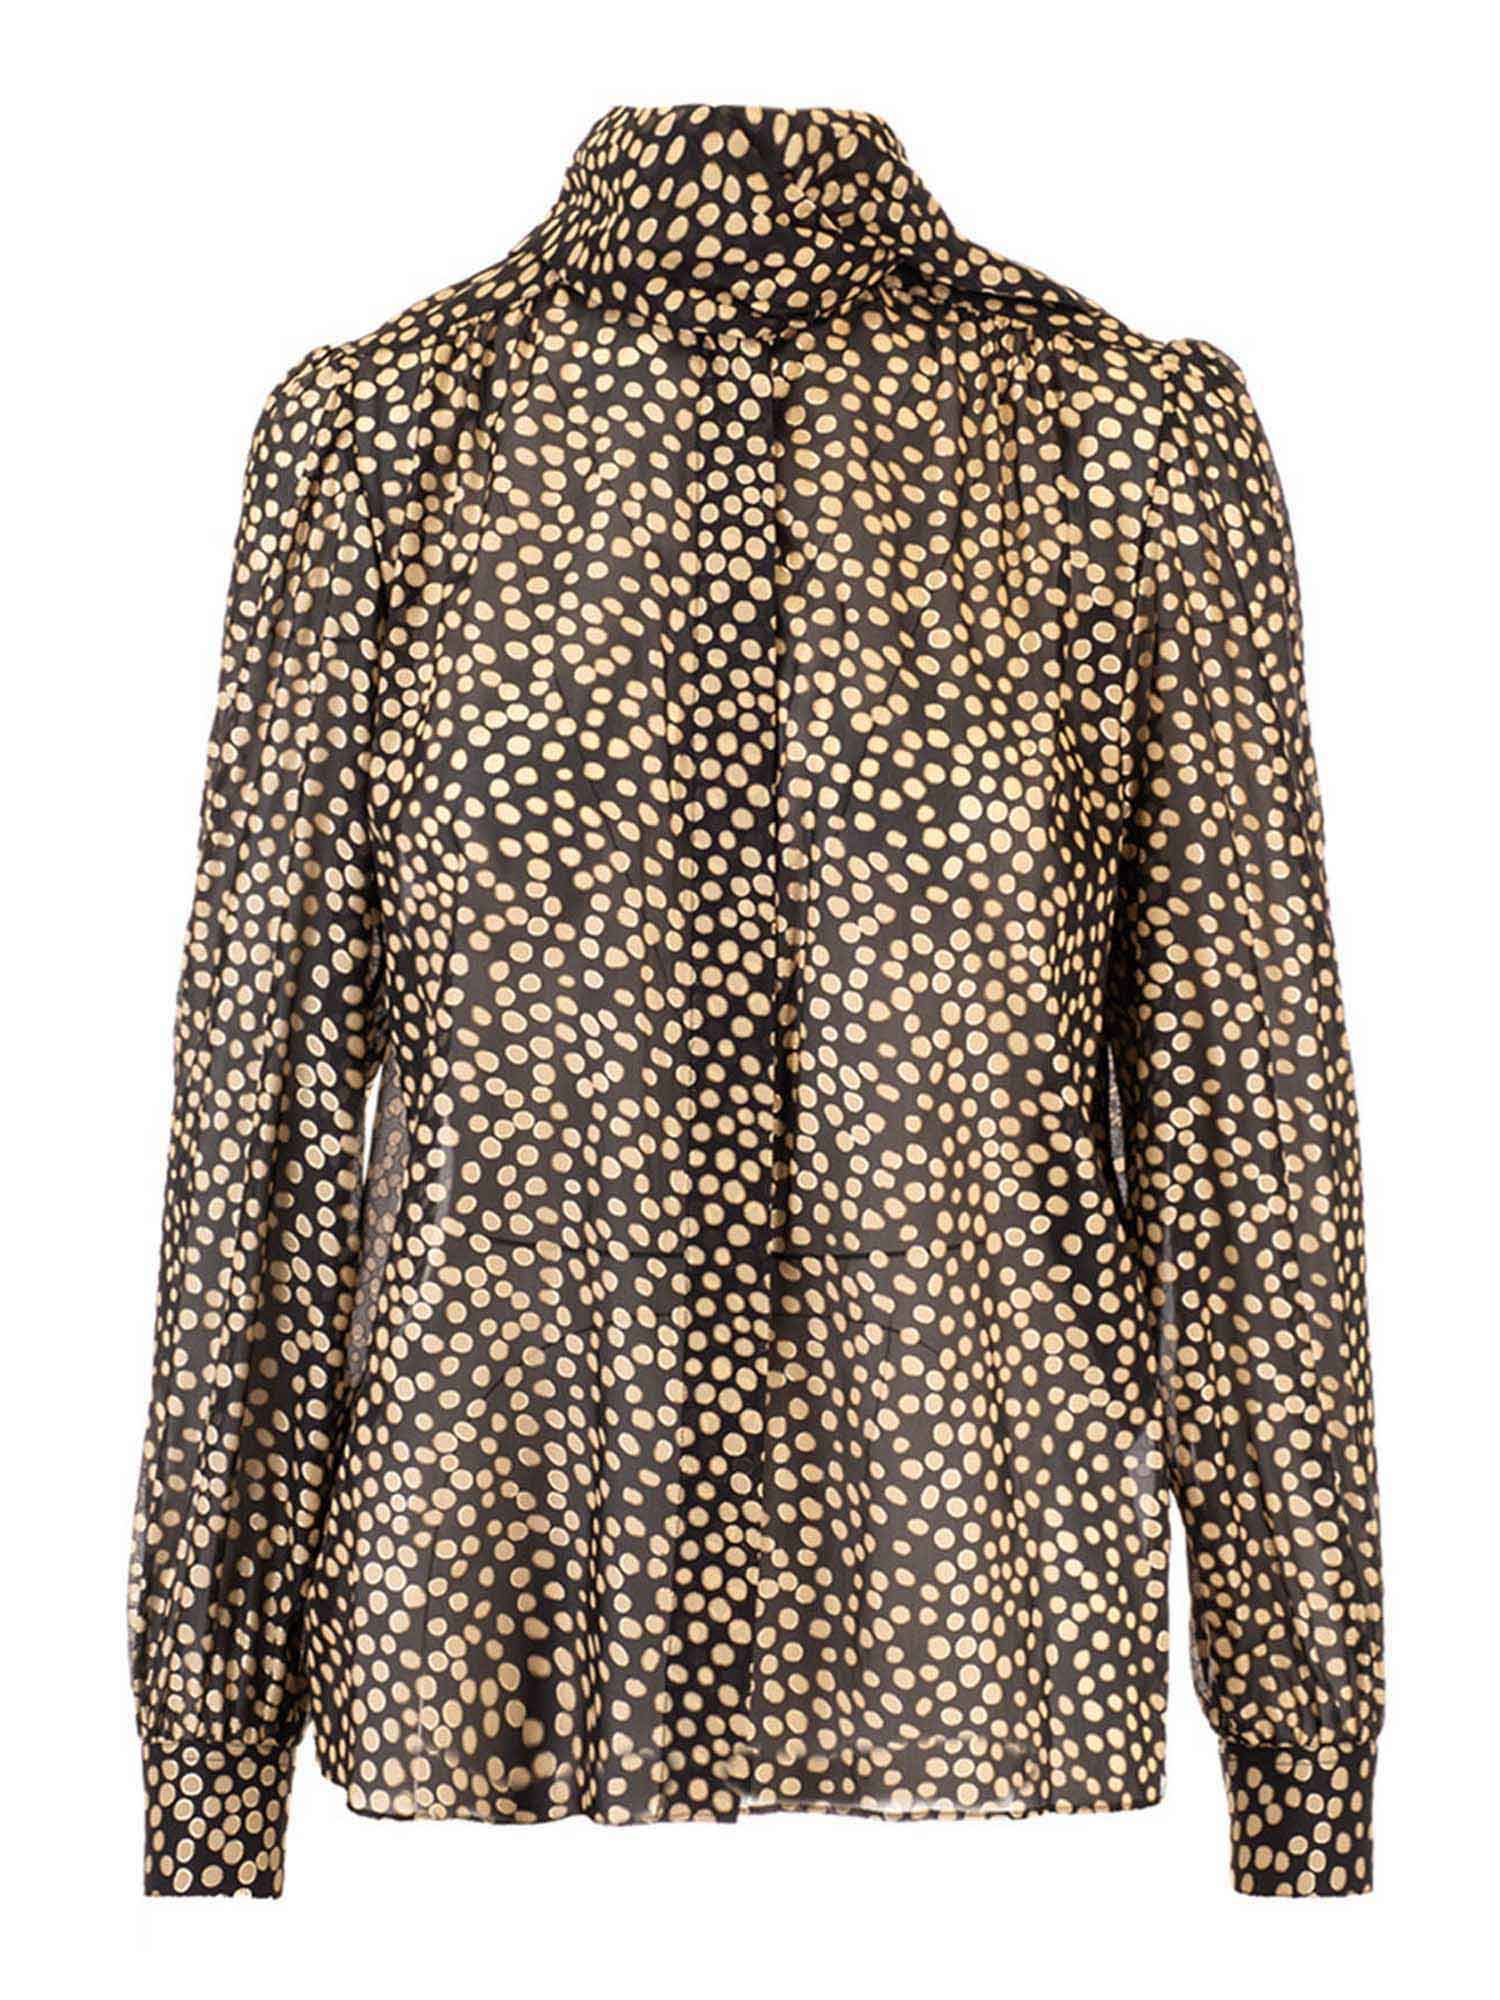 Saint Laurent LAVALLIÈRE BLOUSE IN GOLD AND BLACK